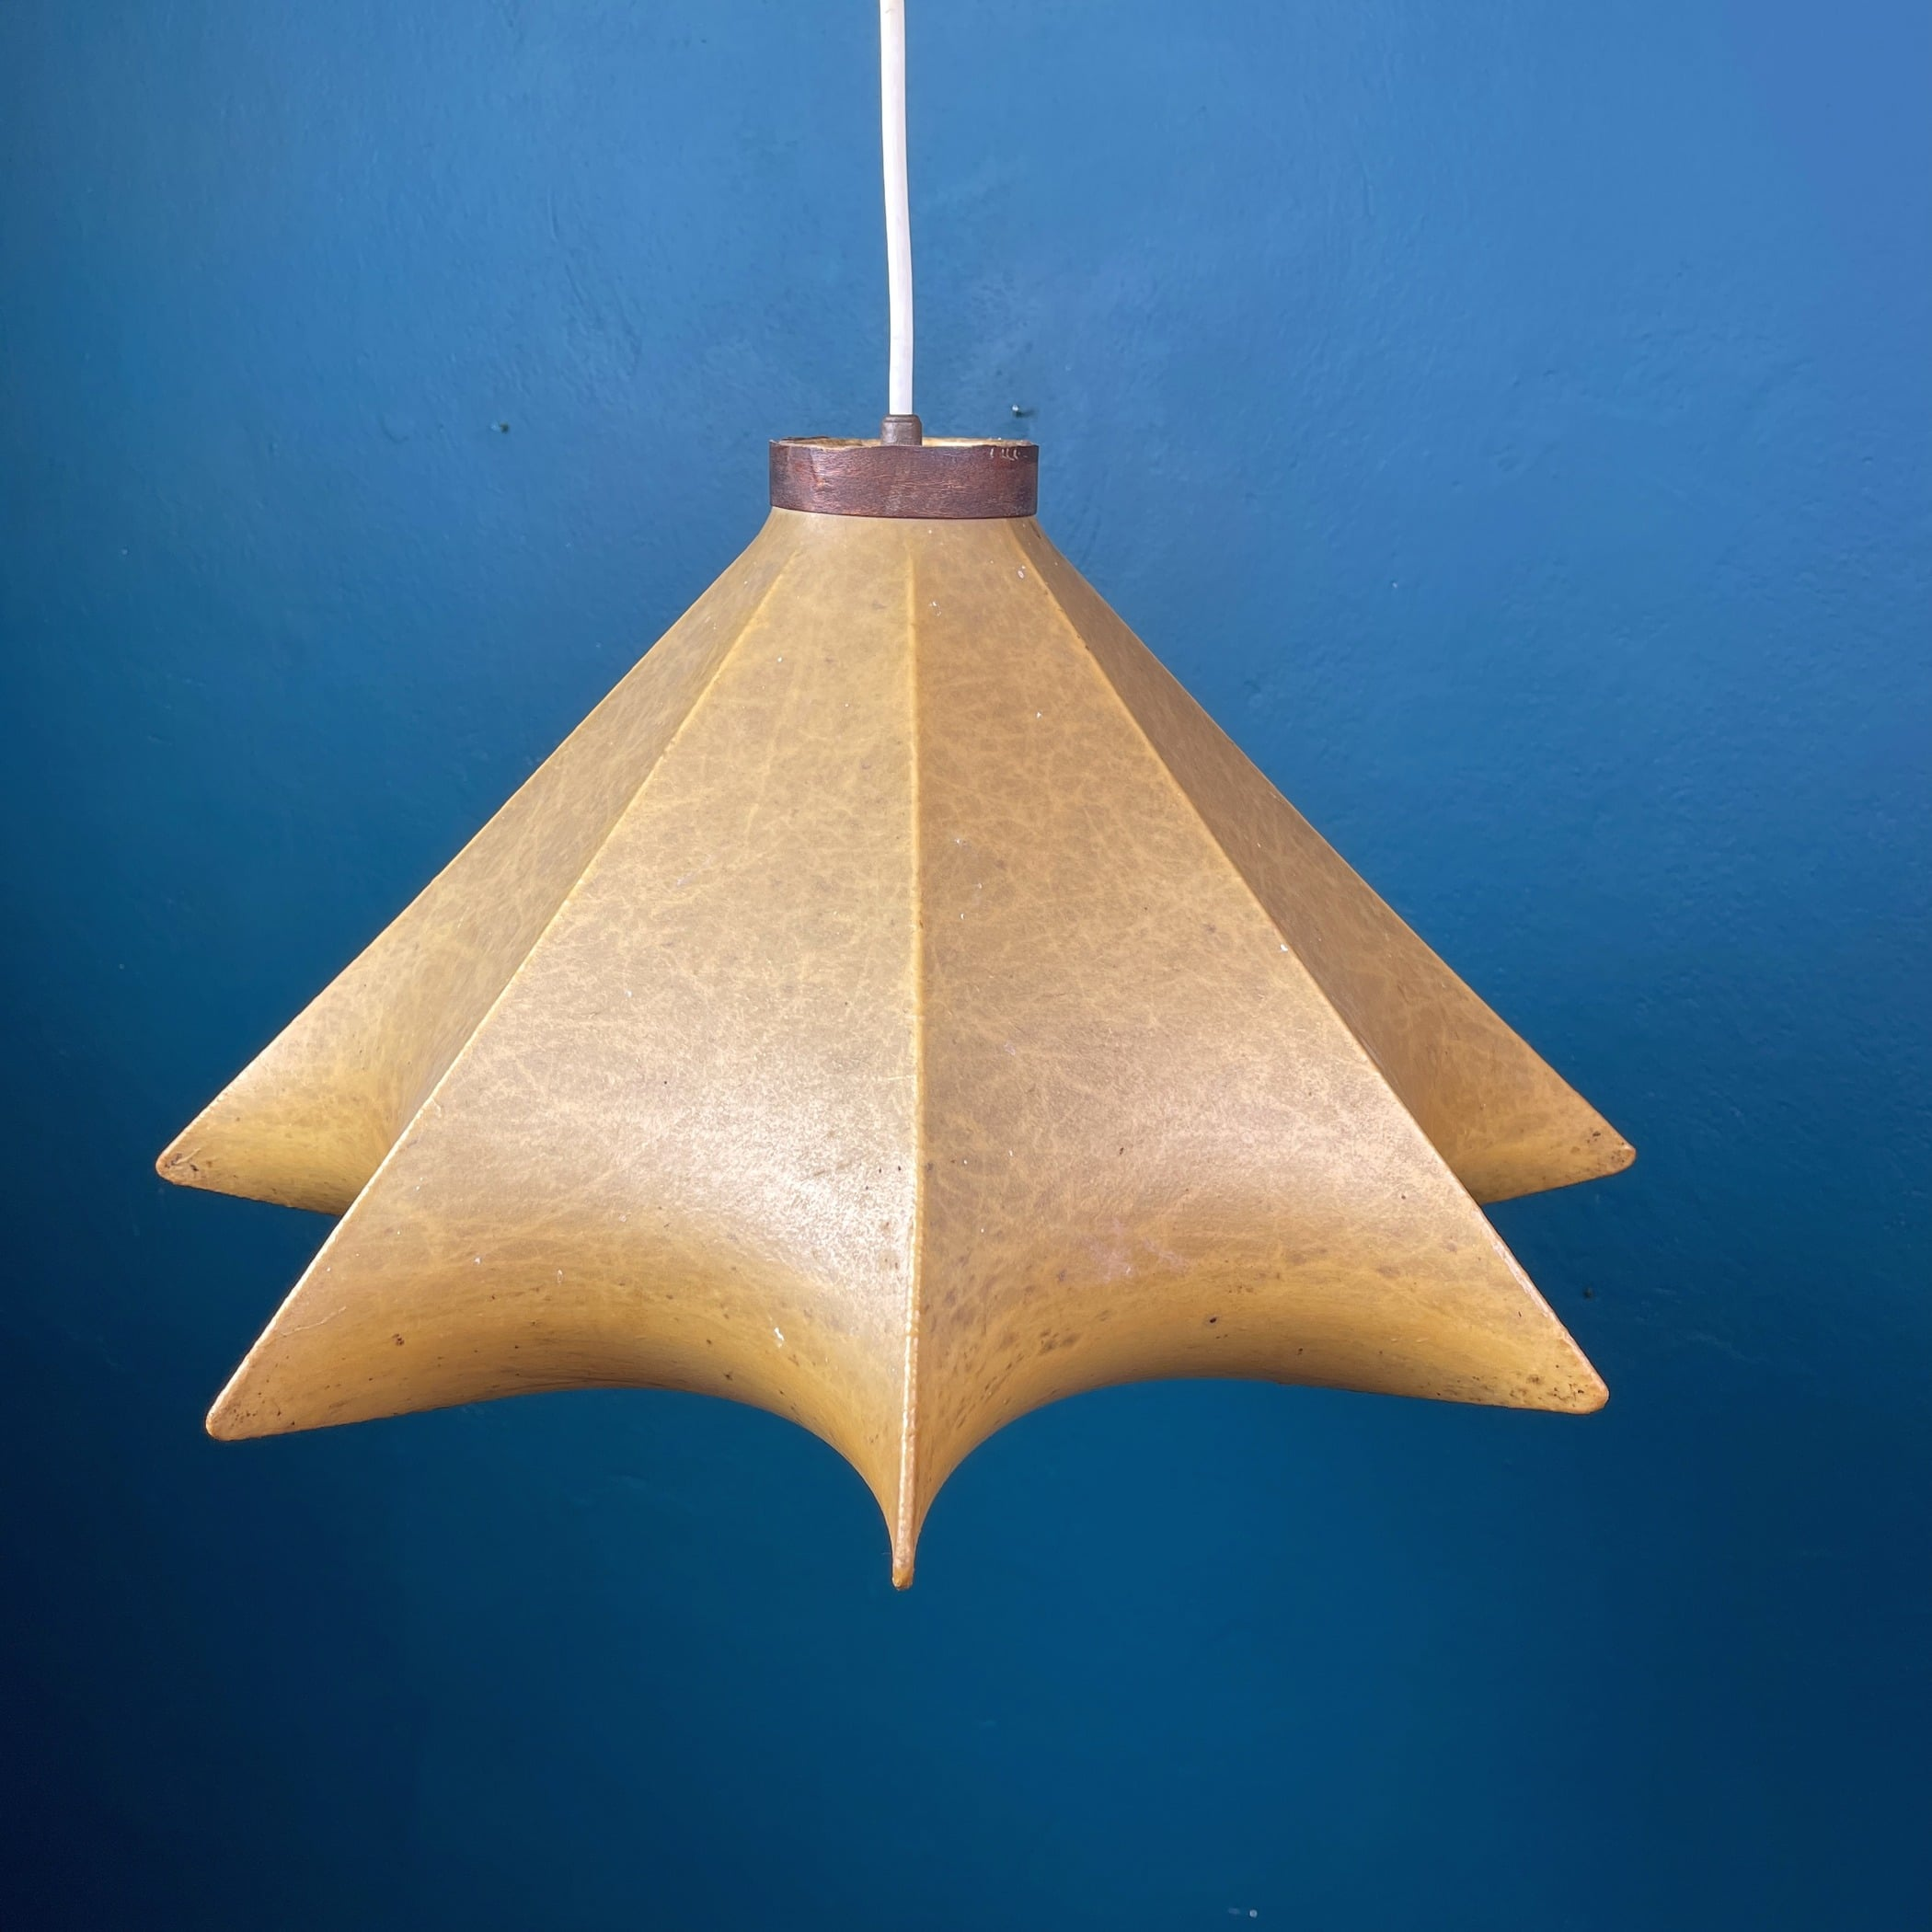 Mid-century pendant lamp COCOON by Achille Castiglioni for Flos Italy 1960s Vintage Space Age Italian Cocoon lamp